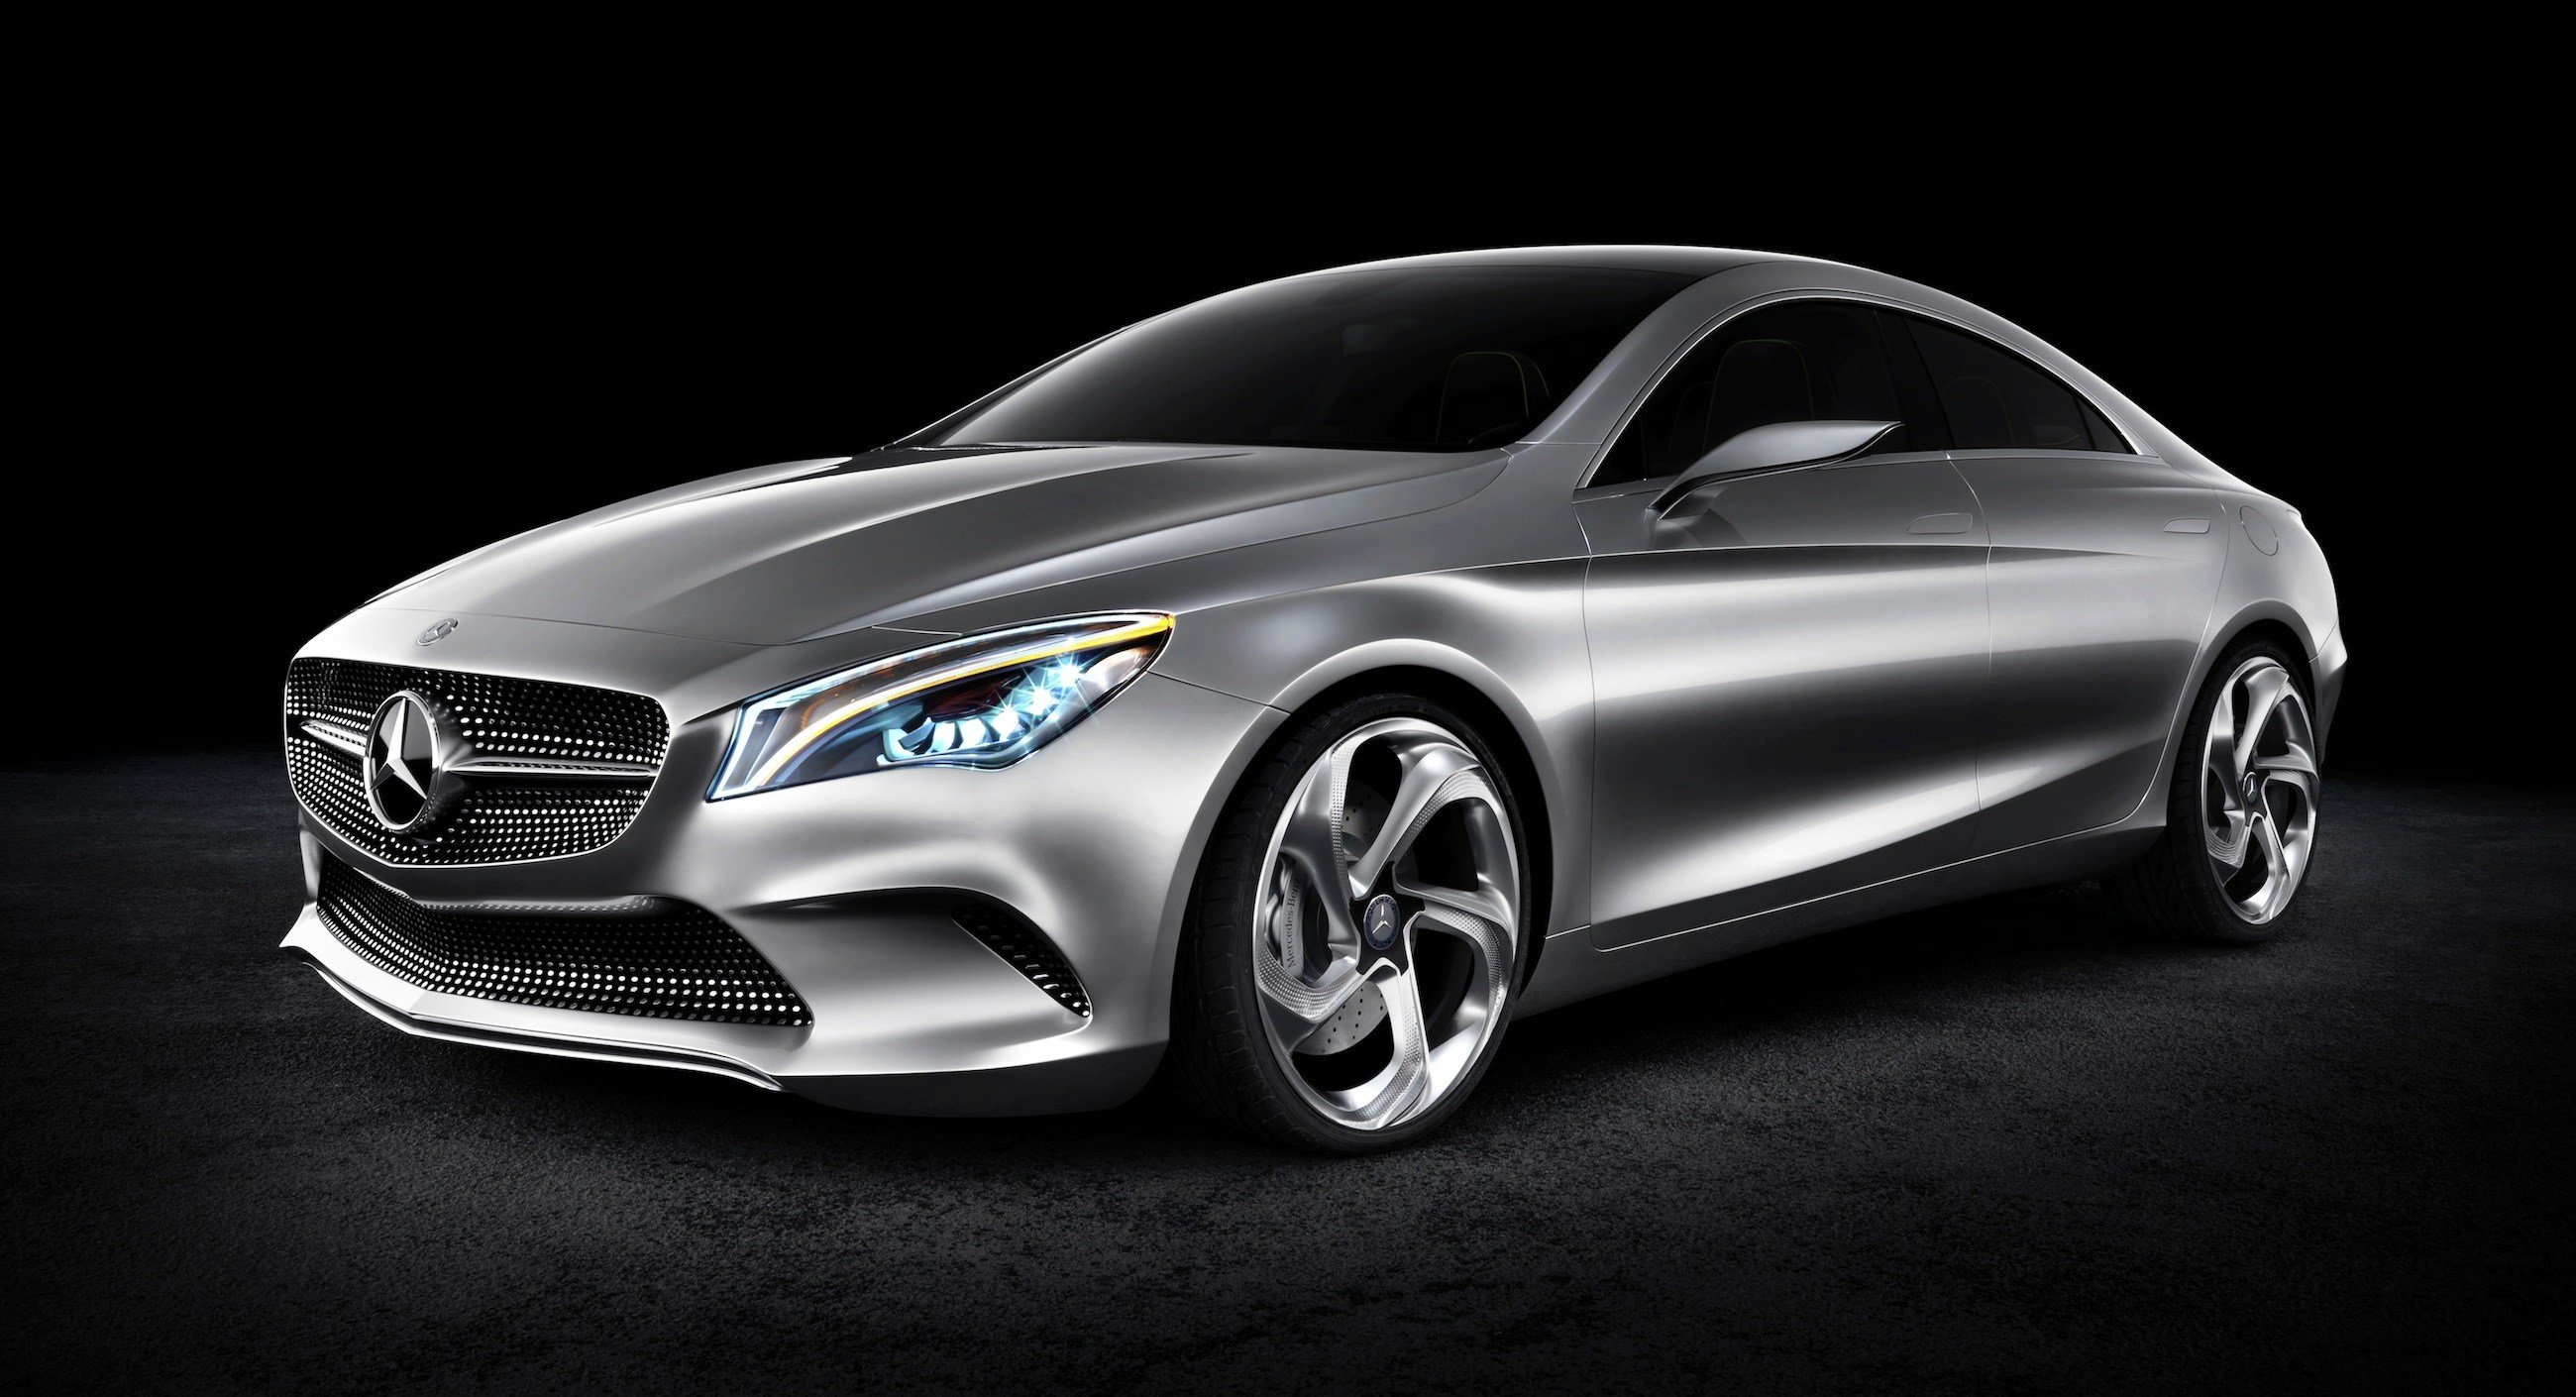 Latest Mercedes Benz Cla Images Leak Photos 1 Of 6 Free Download